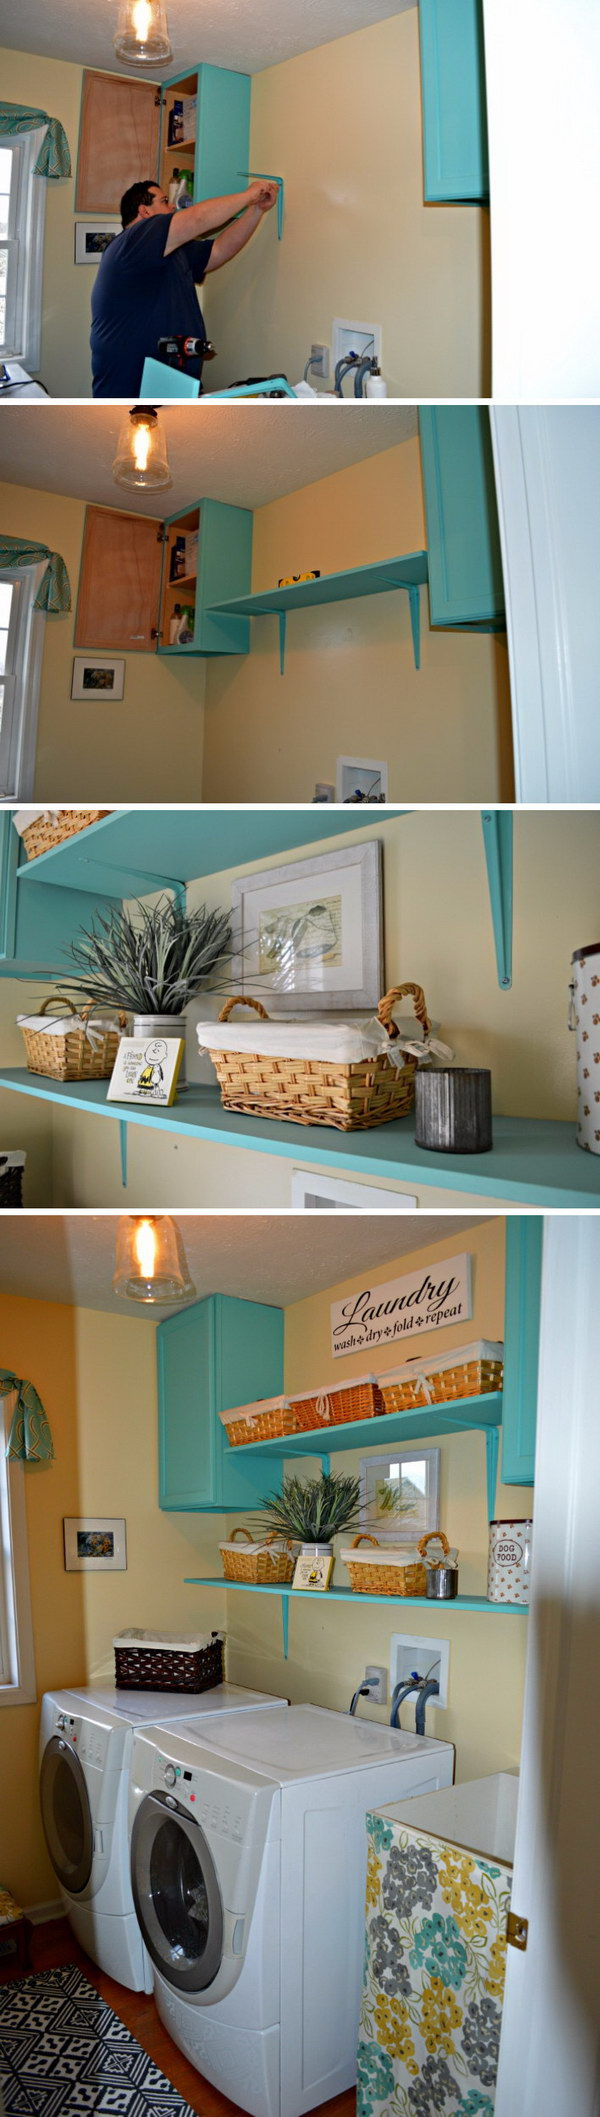 Add More Open Shelving and Cabinets for Storage.